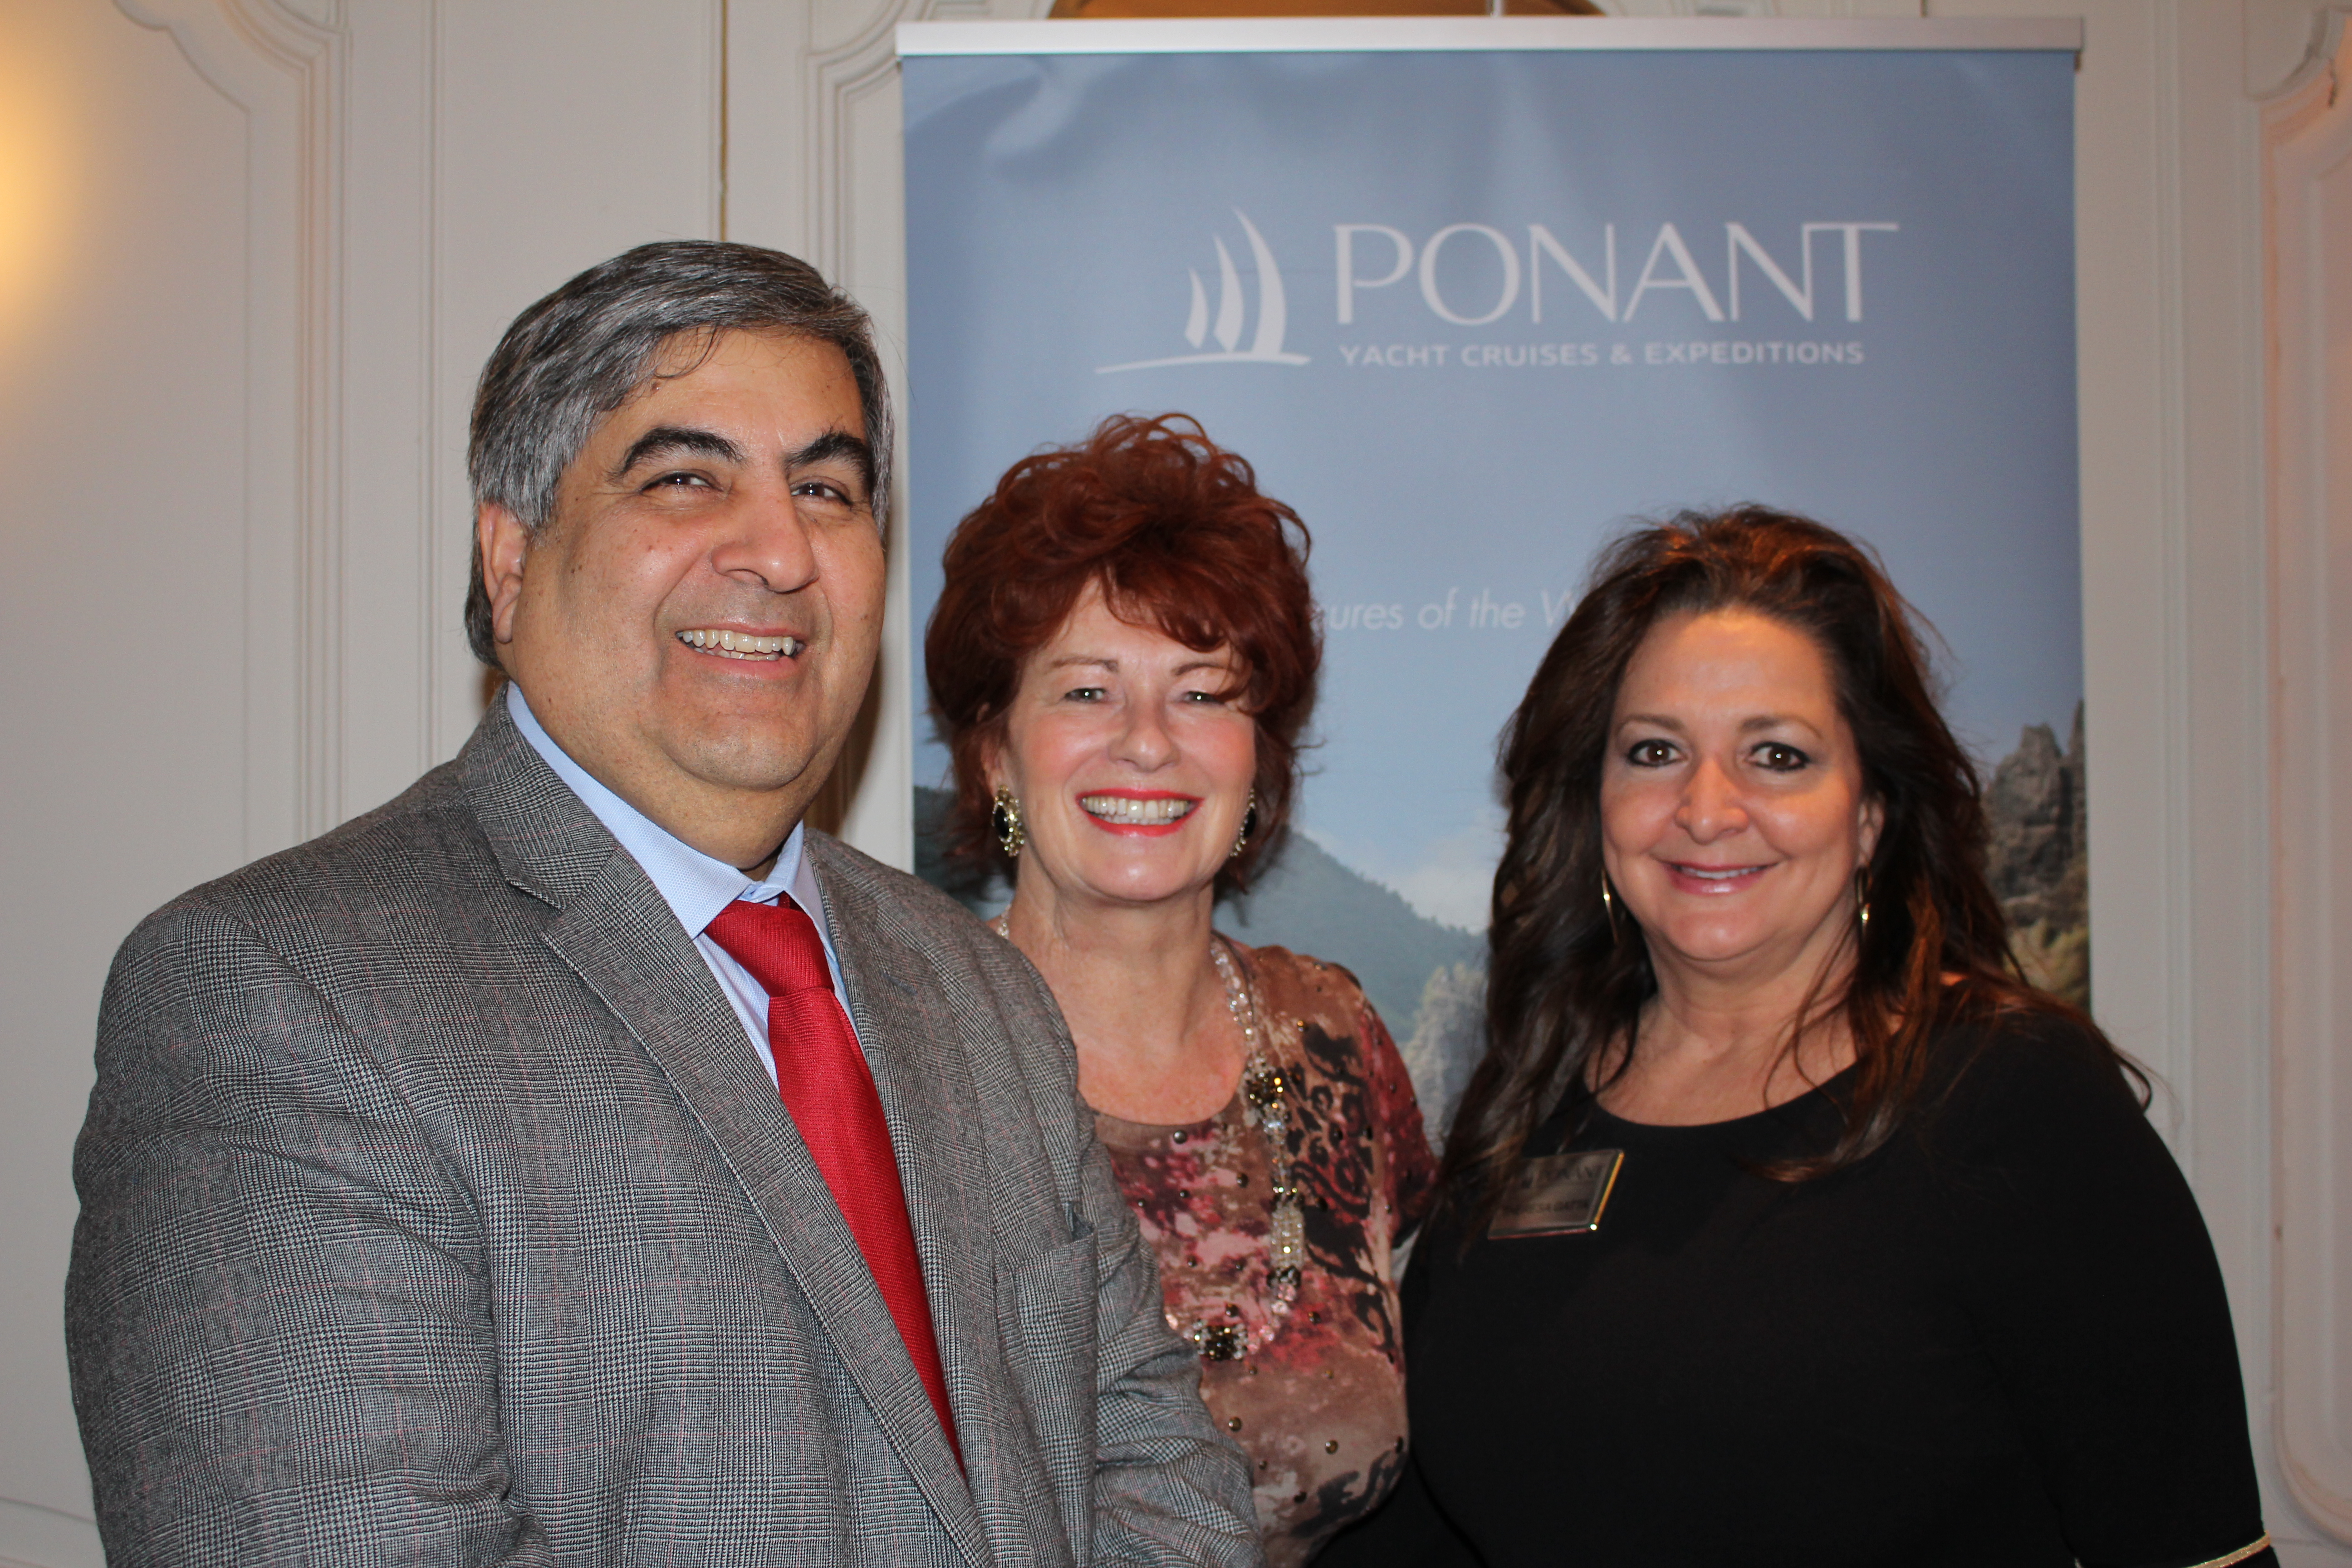 PONANT Sets Sights On North American Market